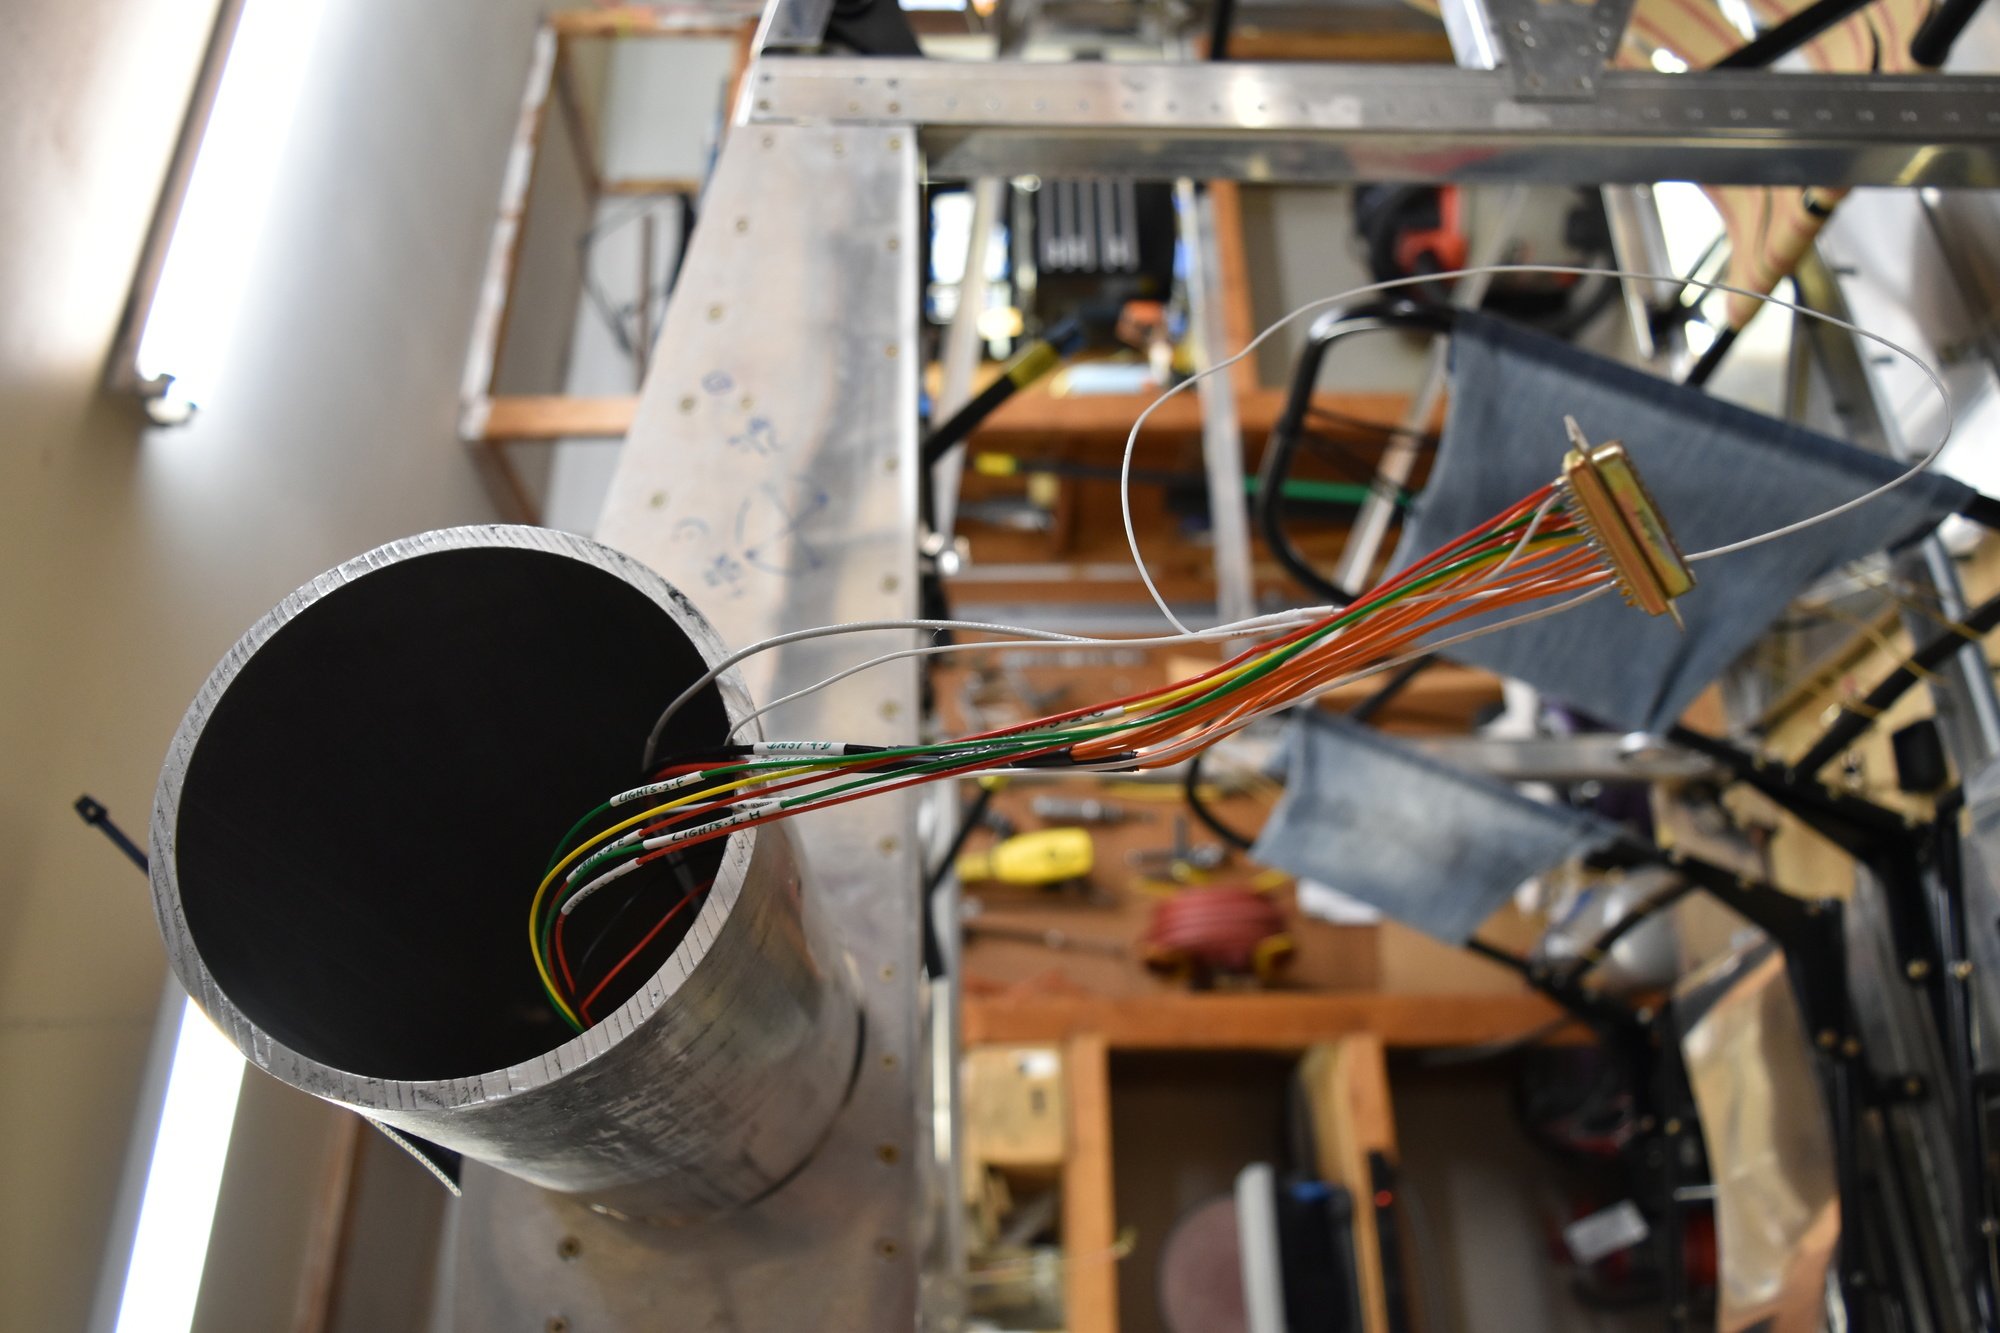 wiring harness installed cheerful curmudgeon wiring harness hanging out of bede bd 4c spar tube